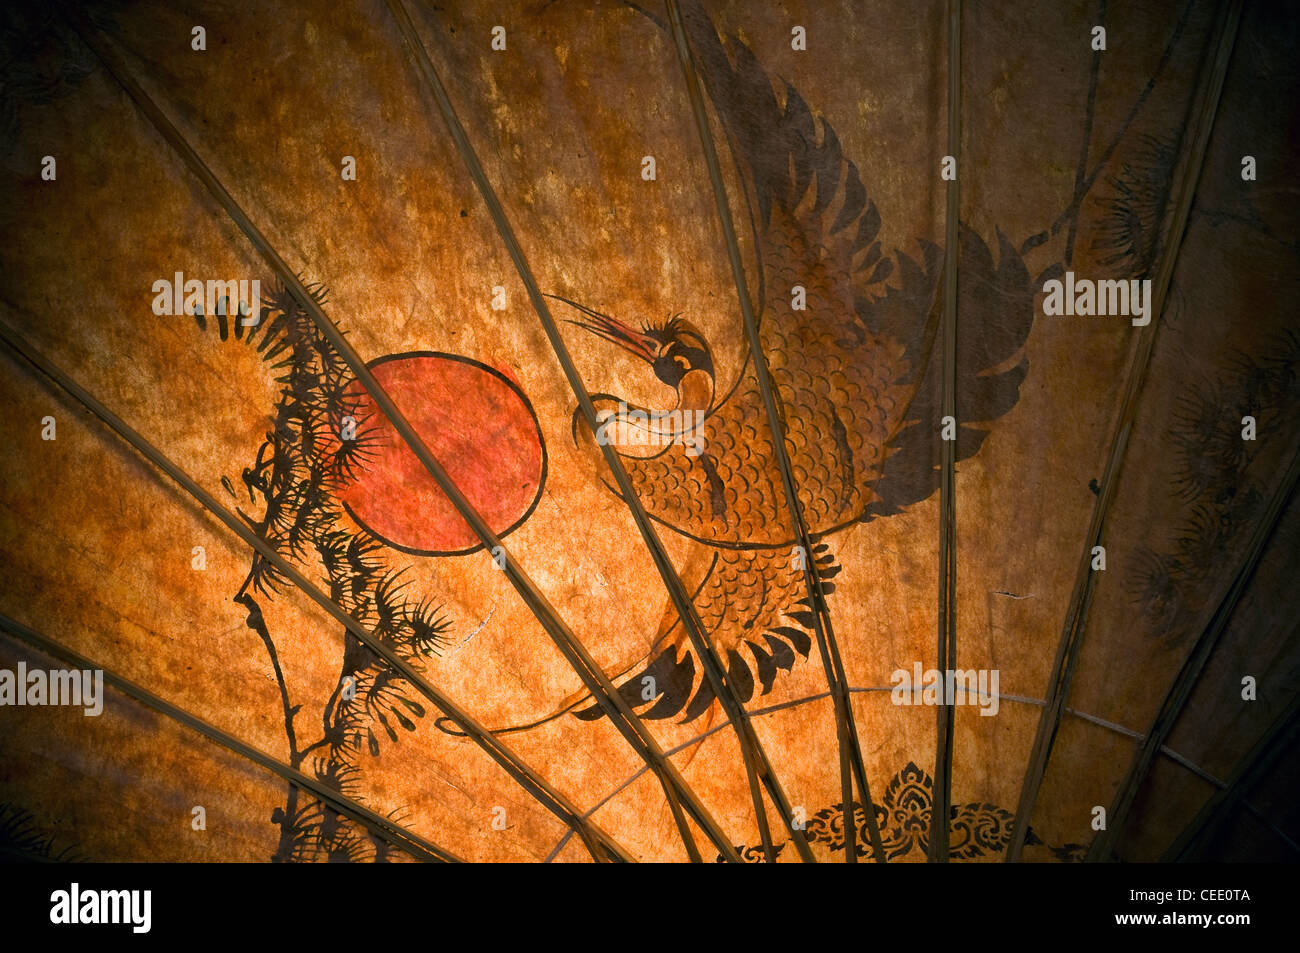 rising sun on japanese parasol, asia, asian, background, bamboo, chiangmai, china, chinese, colorful, crafts, culture, - Stock Image